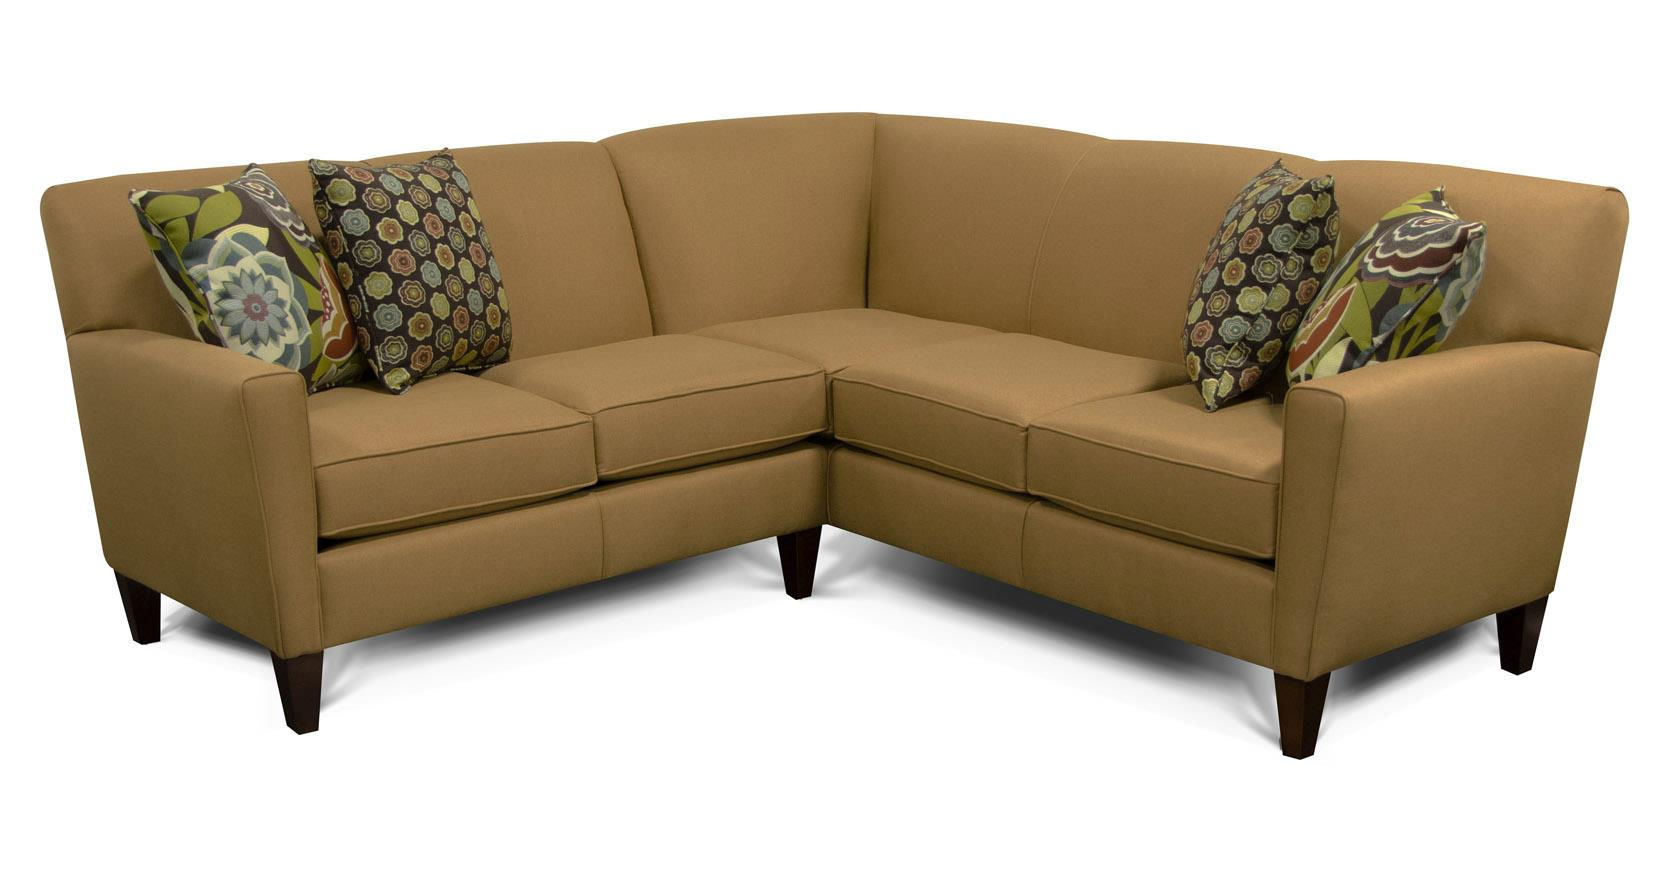 Collegedale 2-Piece Sectional by England at Suburban Furniture